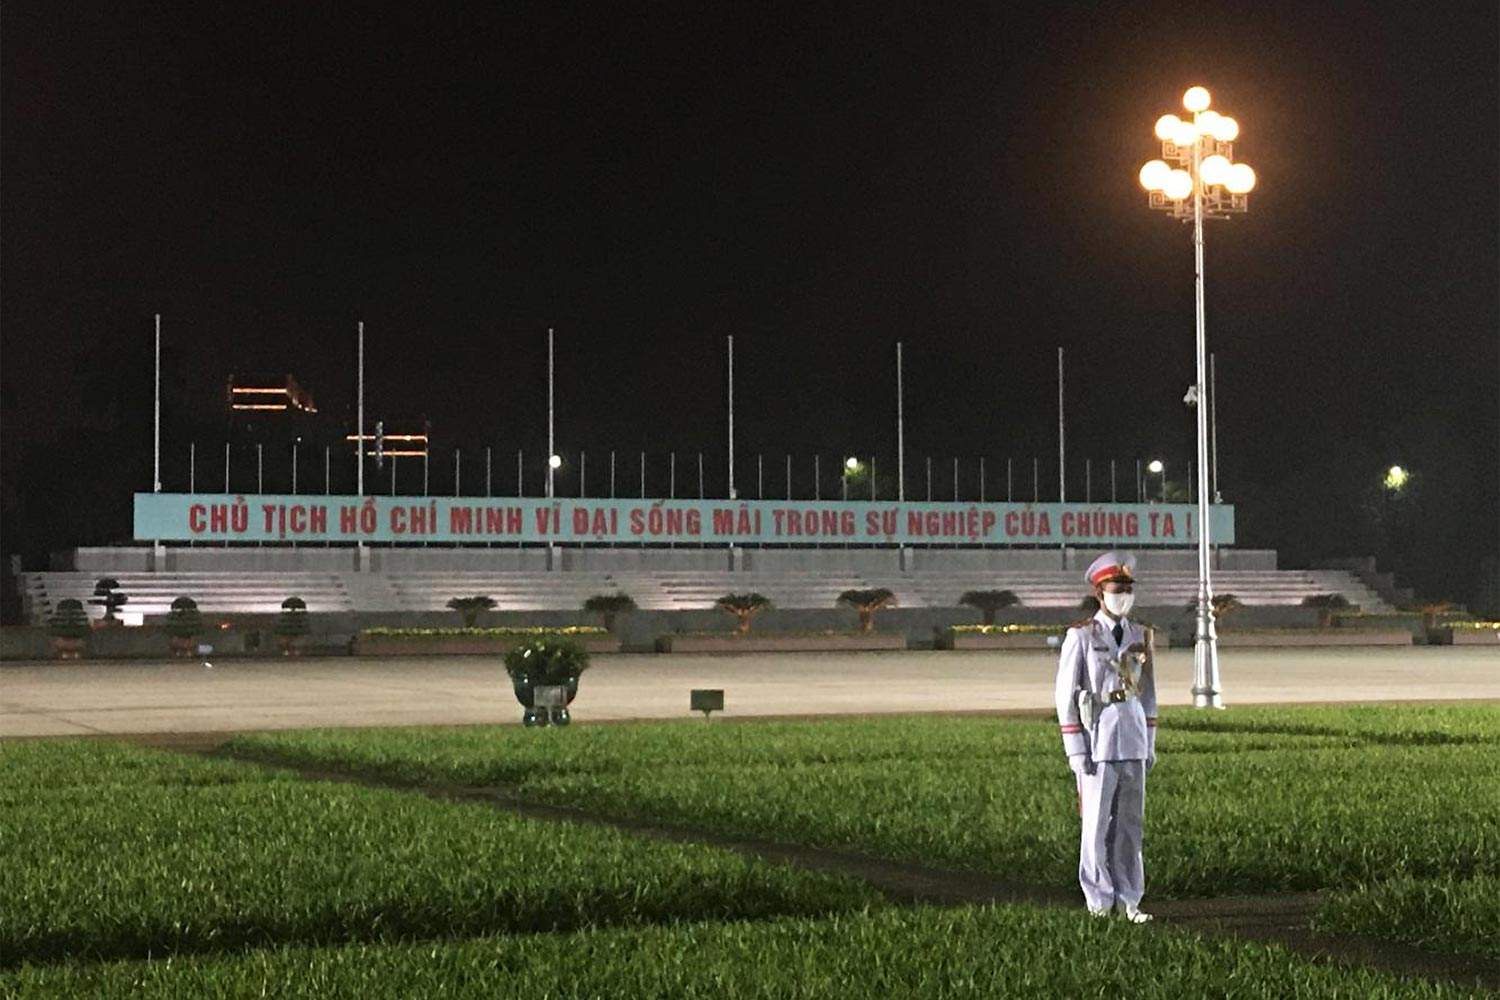 A masked sentry stands guard outside the Ho Chi Minh Mausoleum in Ba Dinh Square, Hanoi in March. (Photo: Uyen Diep)